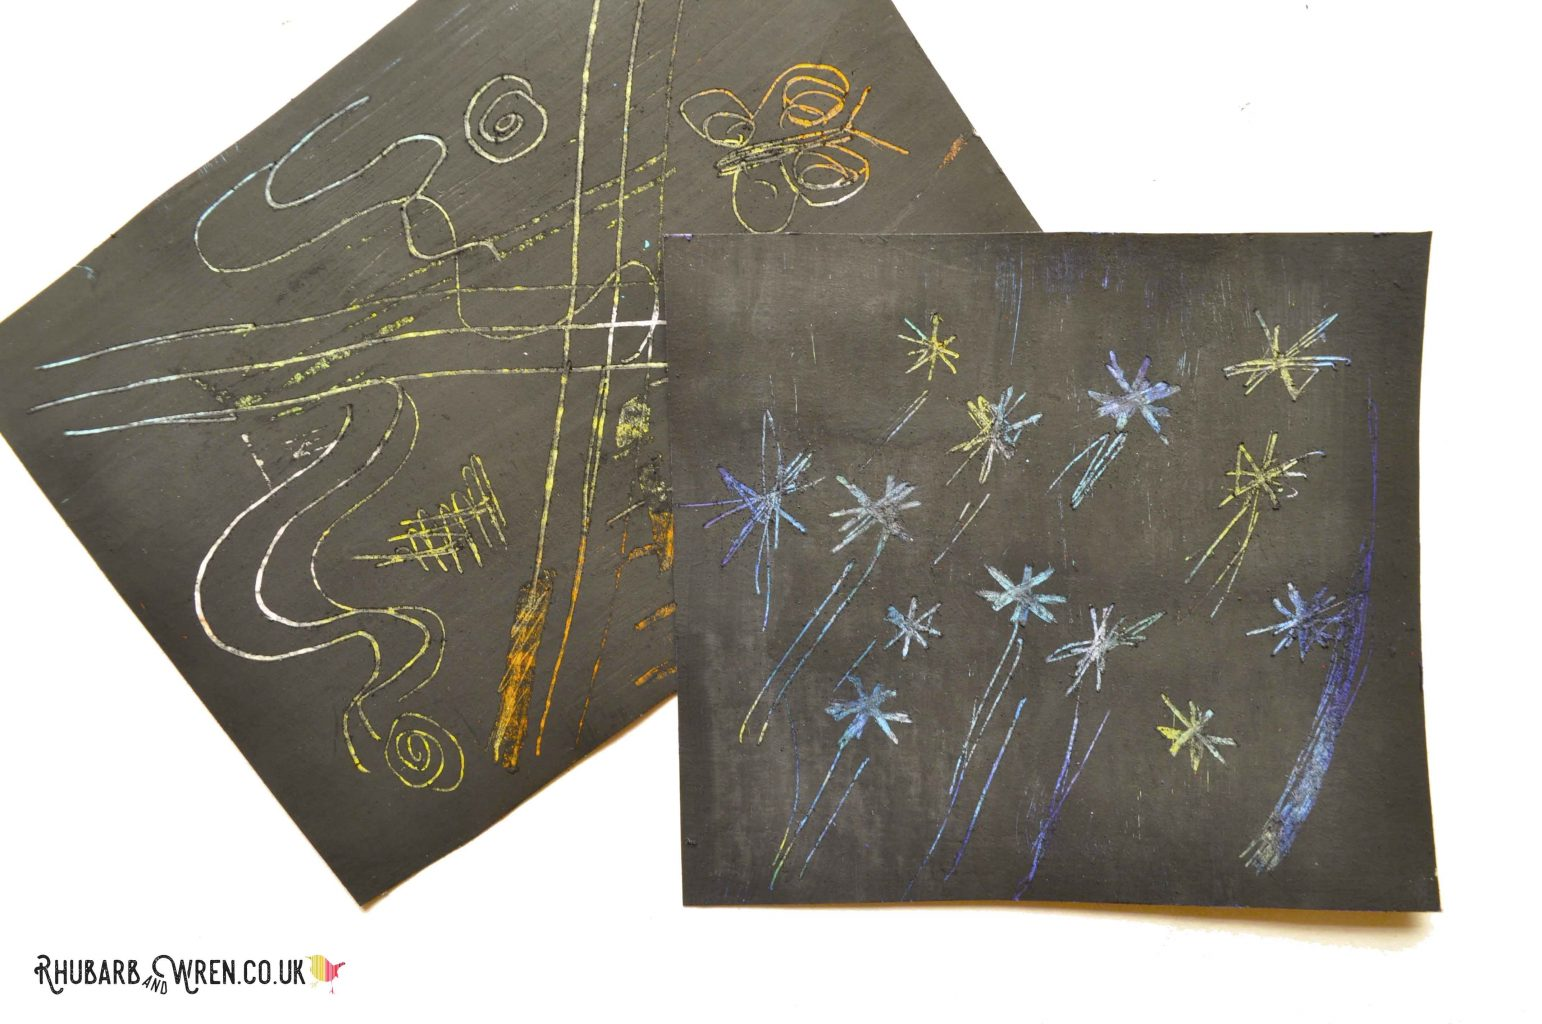 diy scratch art board made using oil pastels